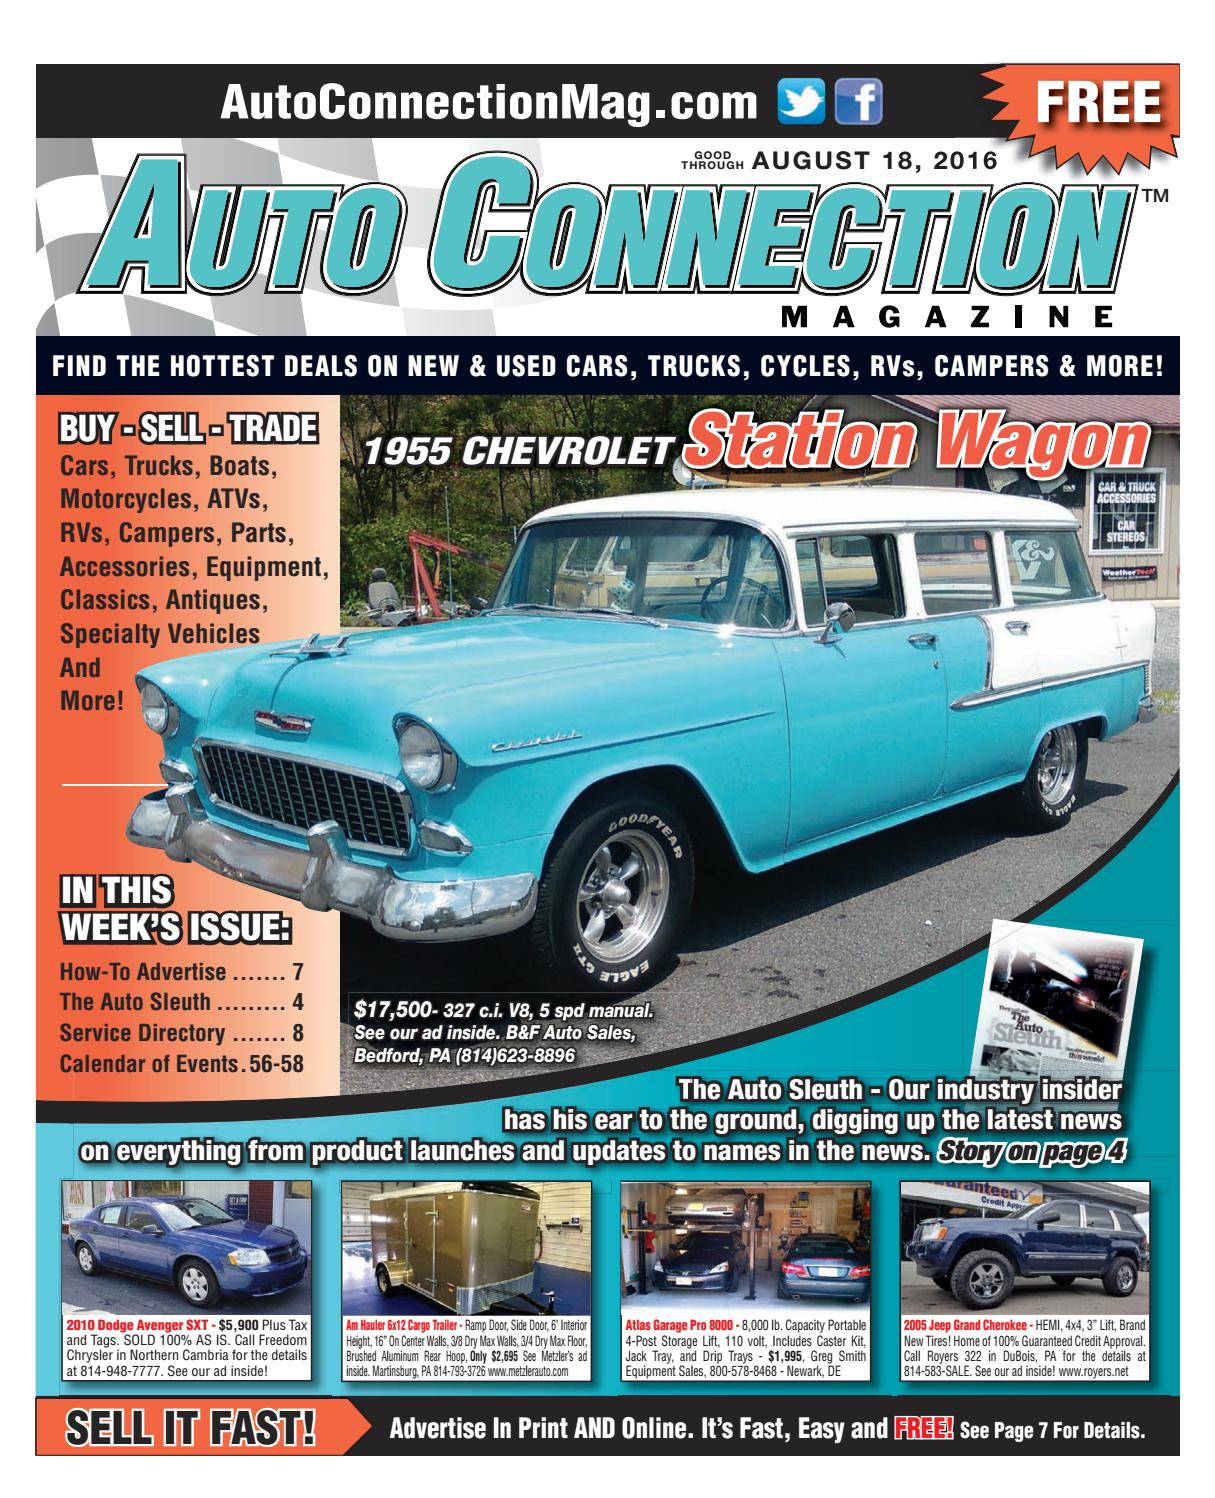 08 18 16 Auto Connection Magazine By Issuu 1988 Chevy Wire Diagramalternatorg20 3 4 Ton Full Size Van